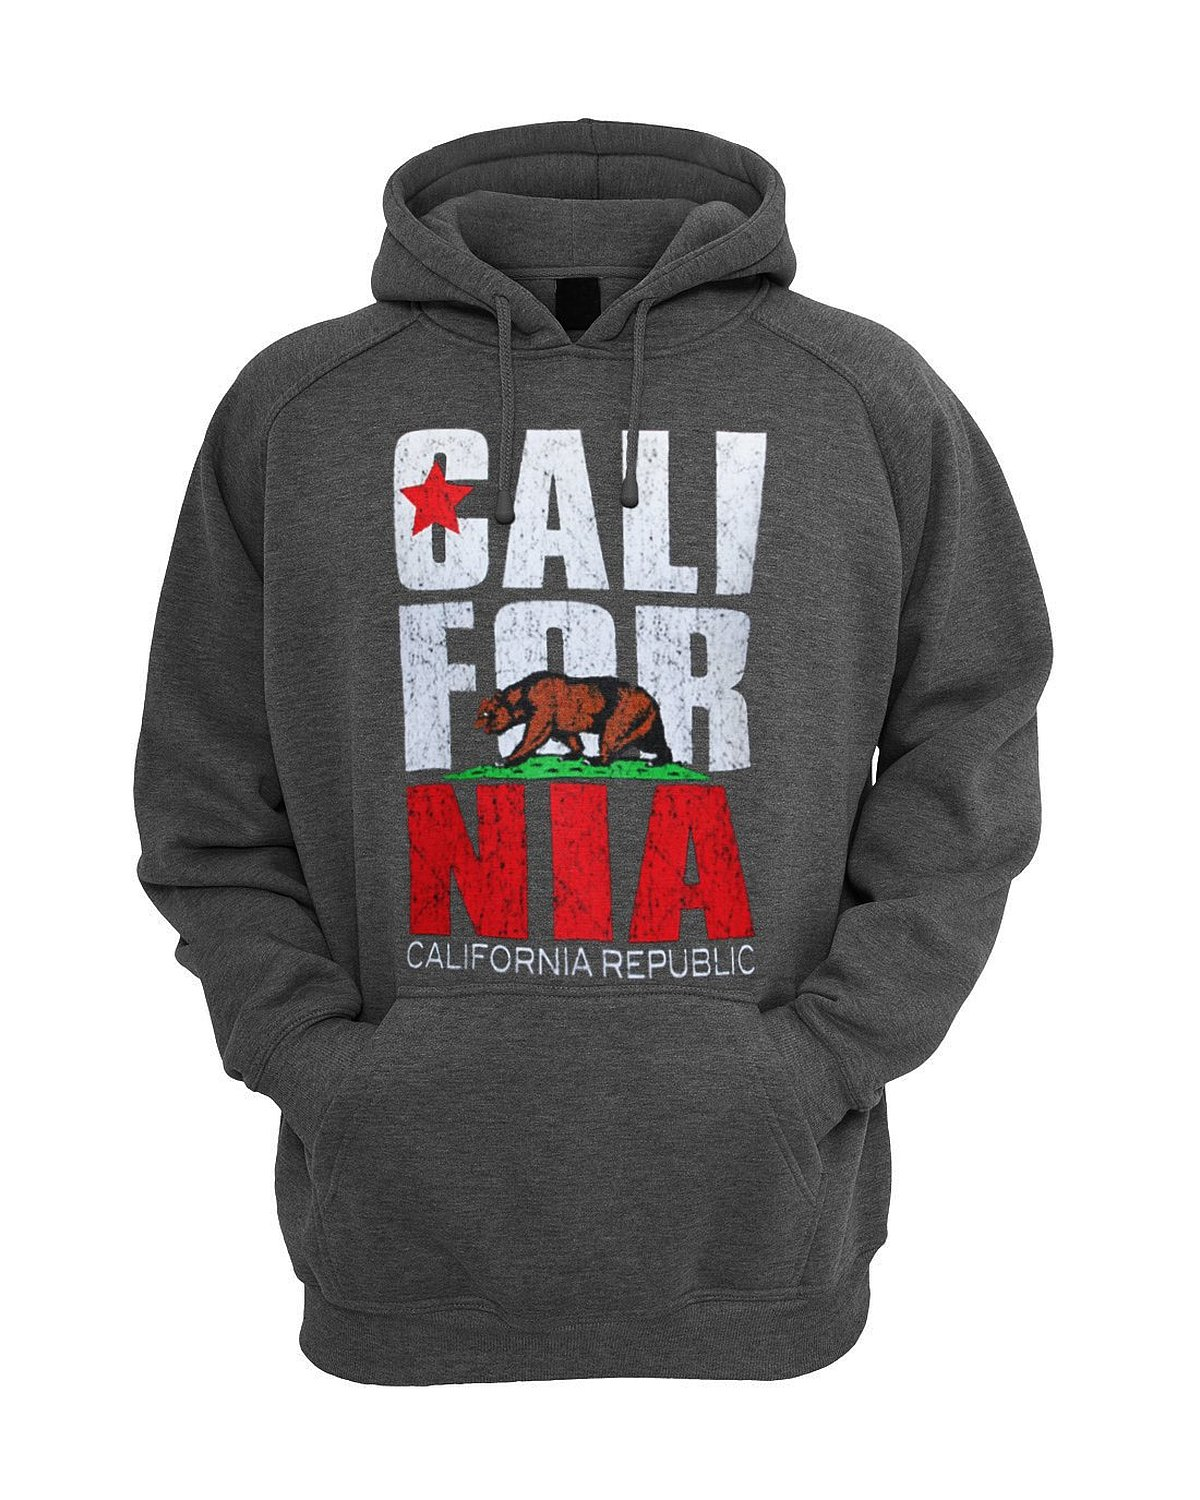 California republic hoodies